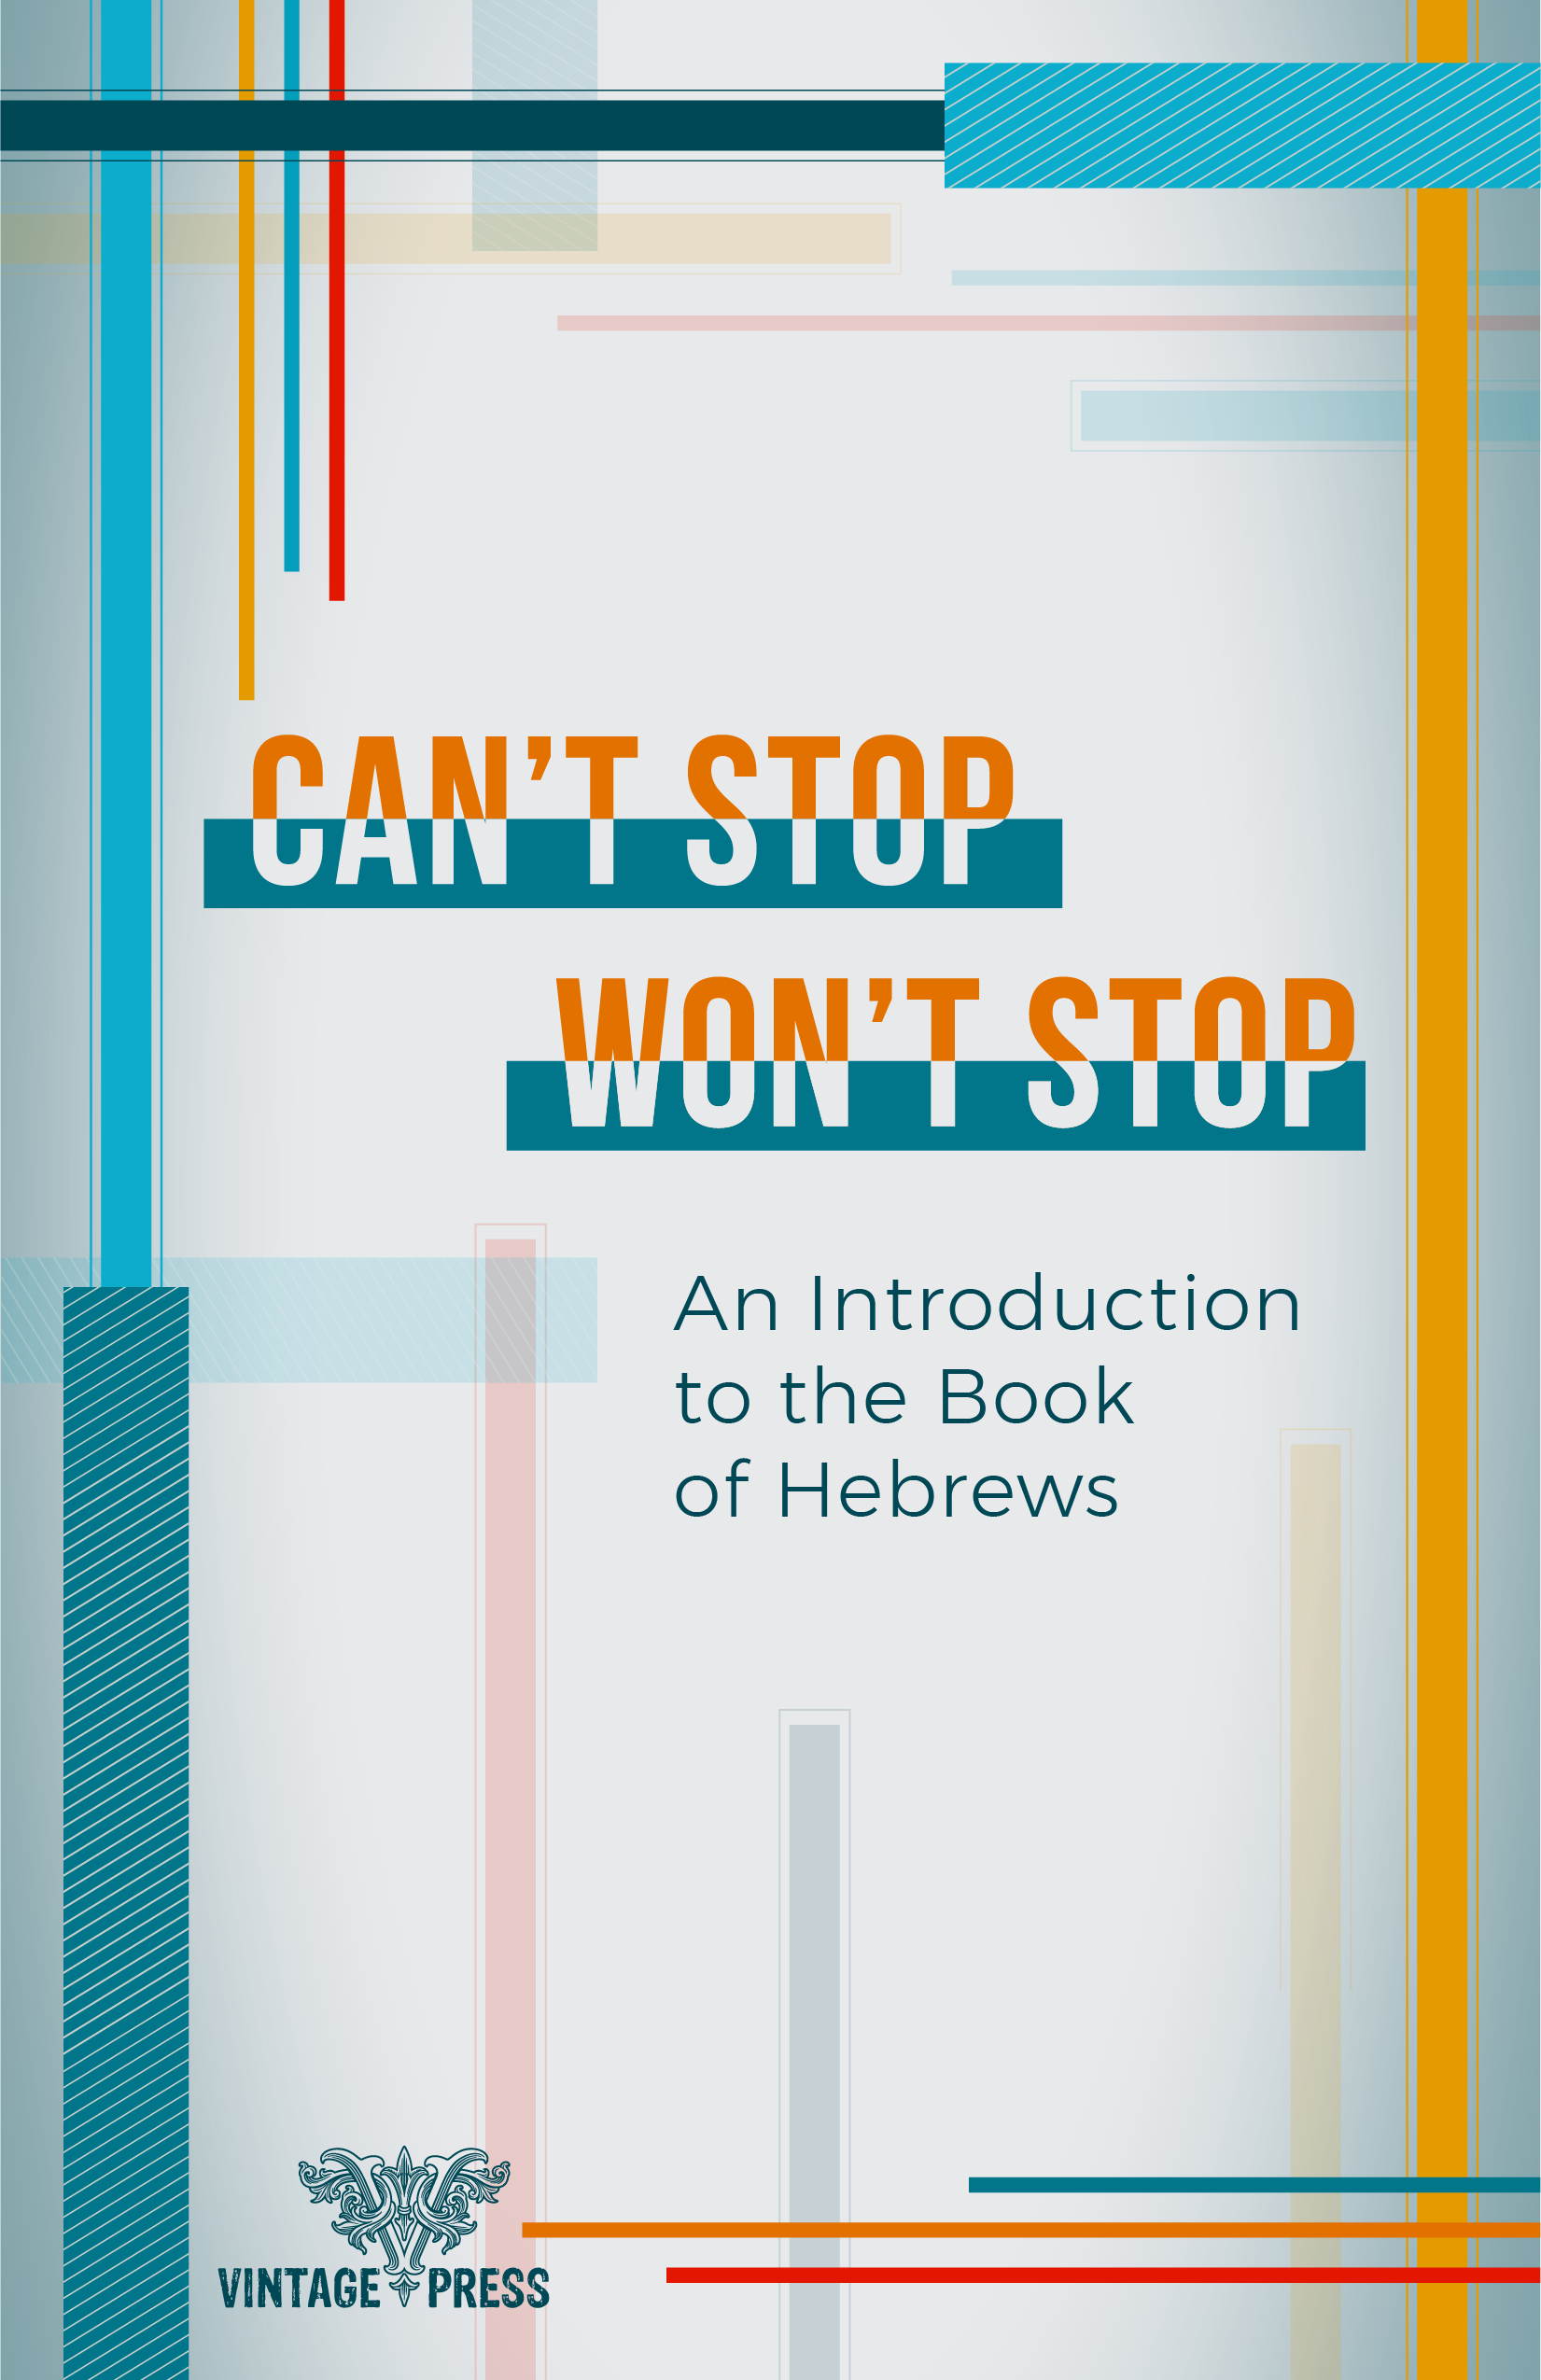 Can't Stop_Intro Booklet Cover.png